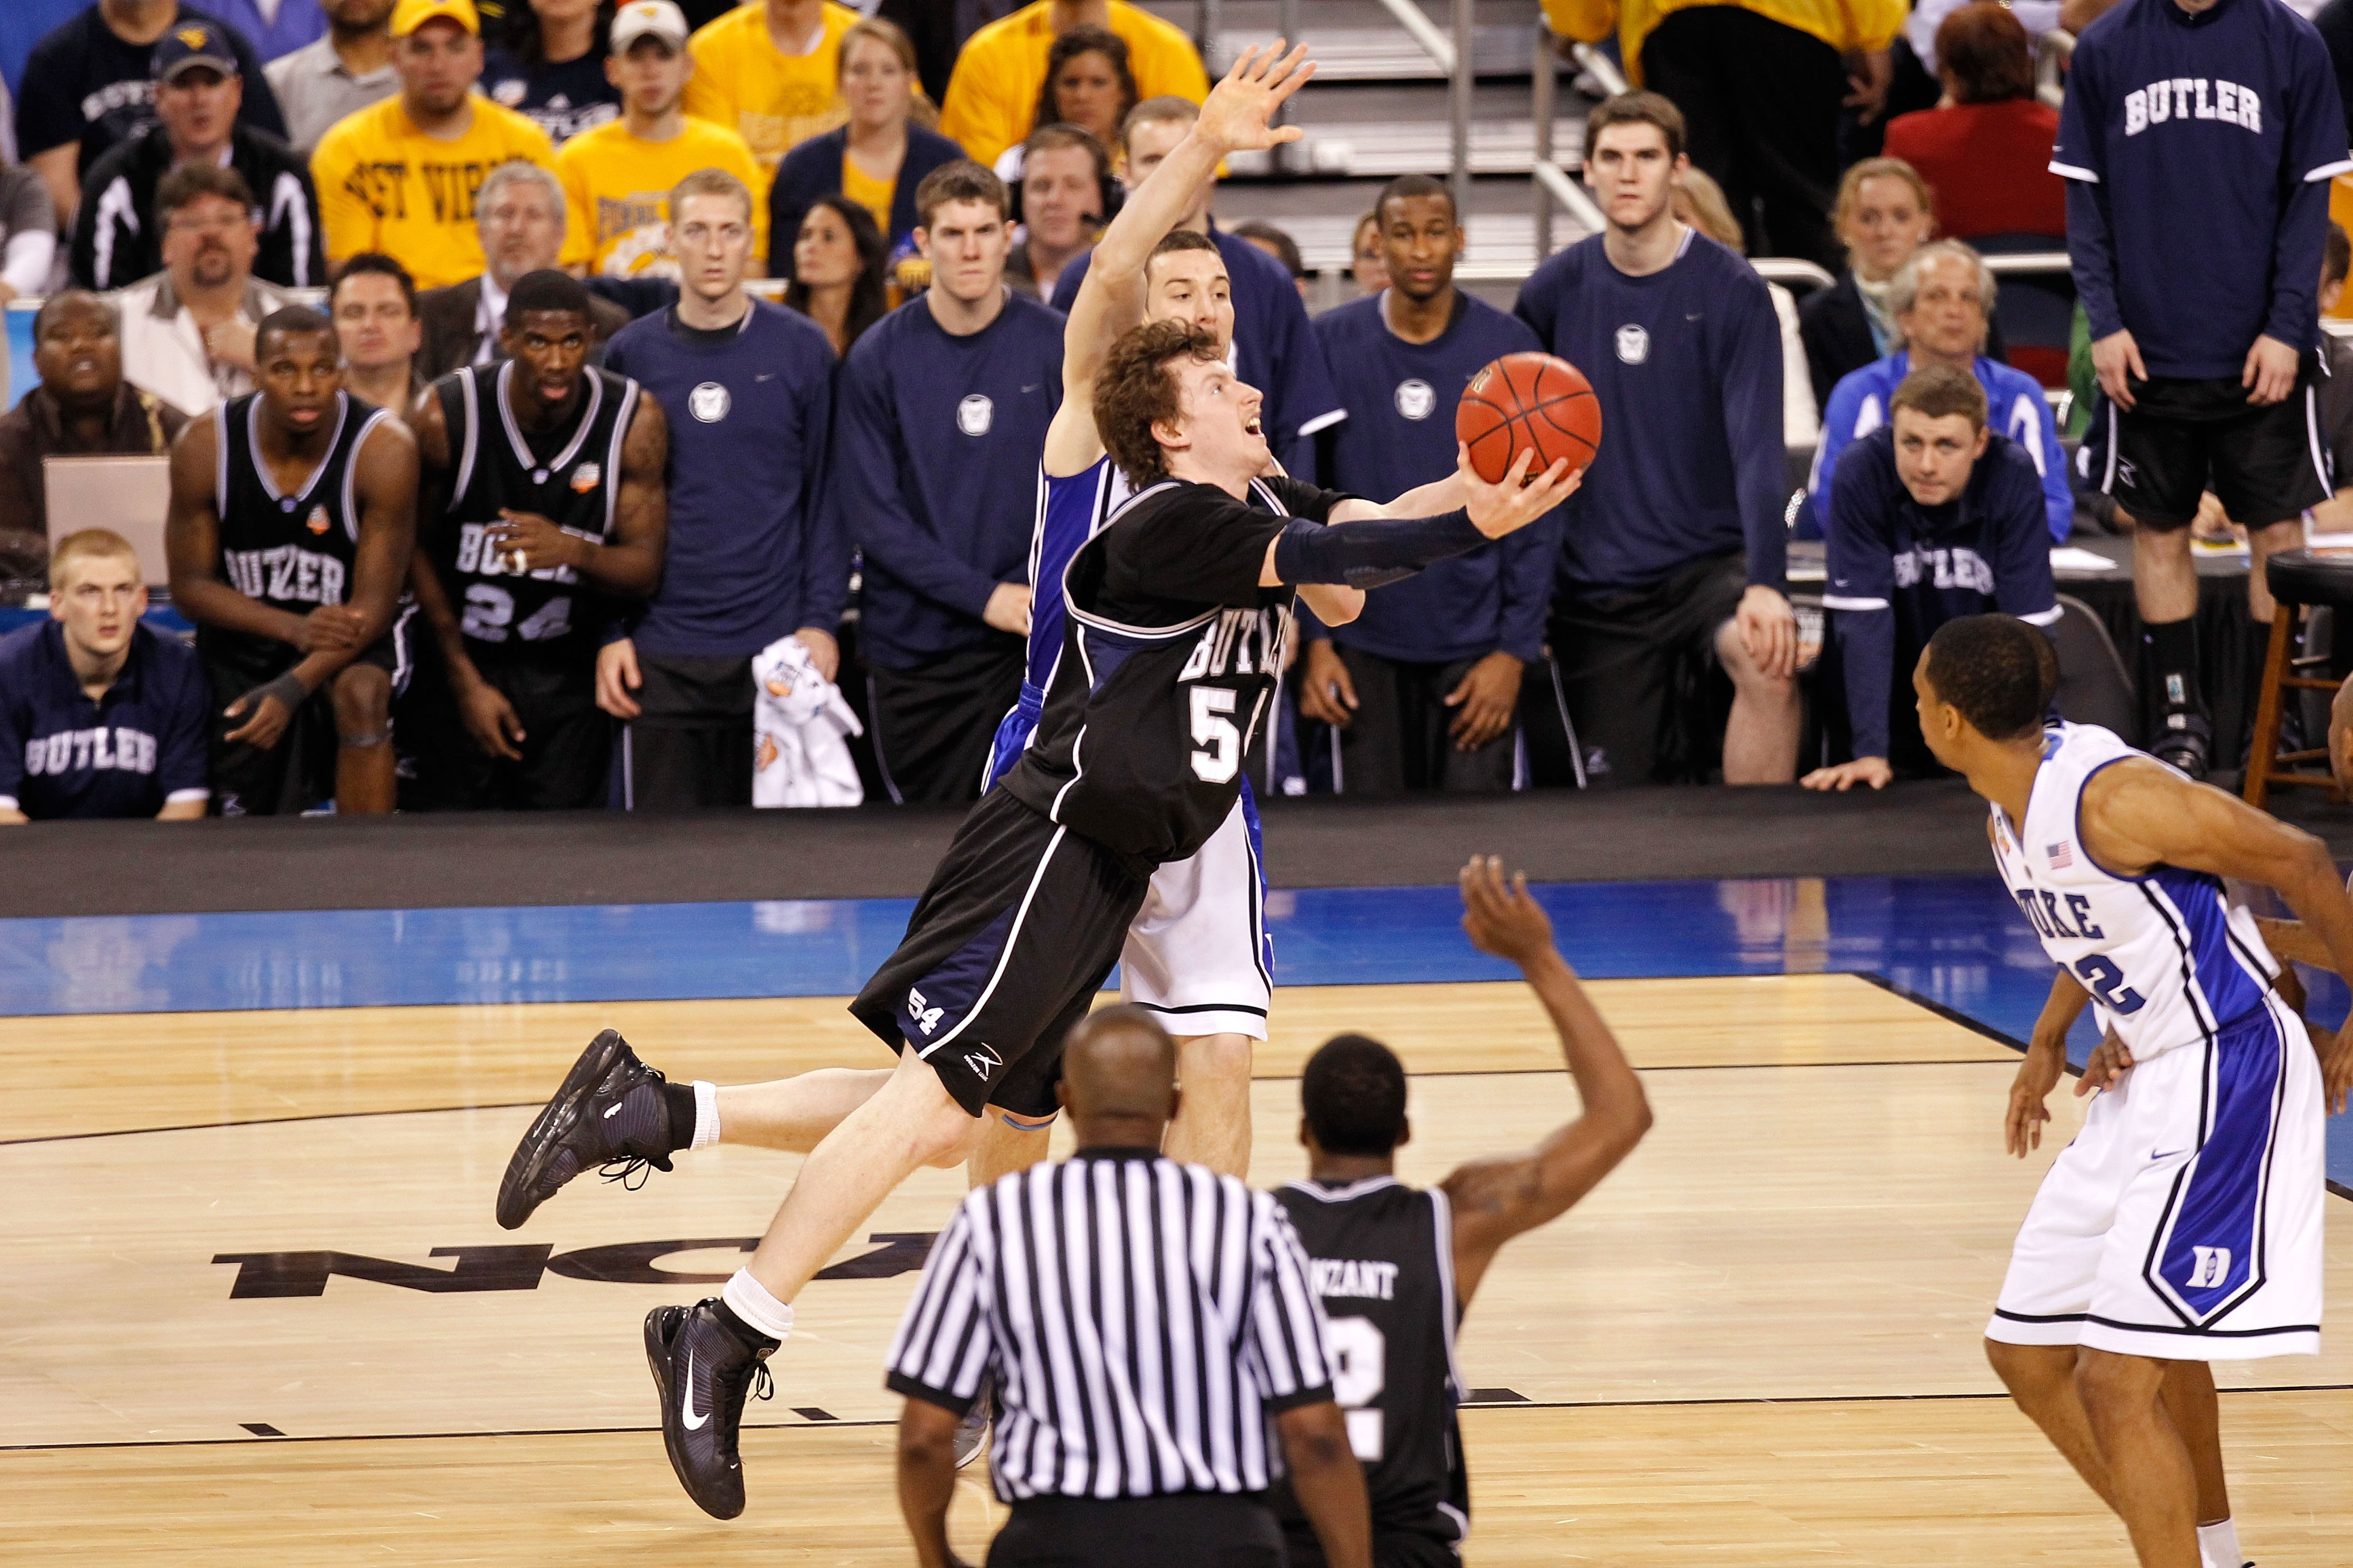 INDIANAPOLIS - APRIL 05:  Matt Howard #54 of the Butler Bulldogs drives for a shot attempt against the Duke Blue Devils during the 2010 NCAA Division I Men's Basketball National Championship game at Lucas Oil Stadium on April 5, 2010 in Indianapolis, Indi